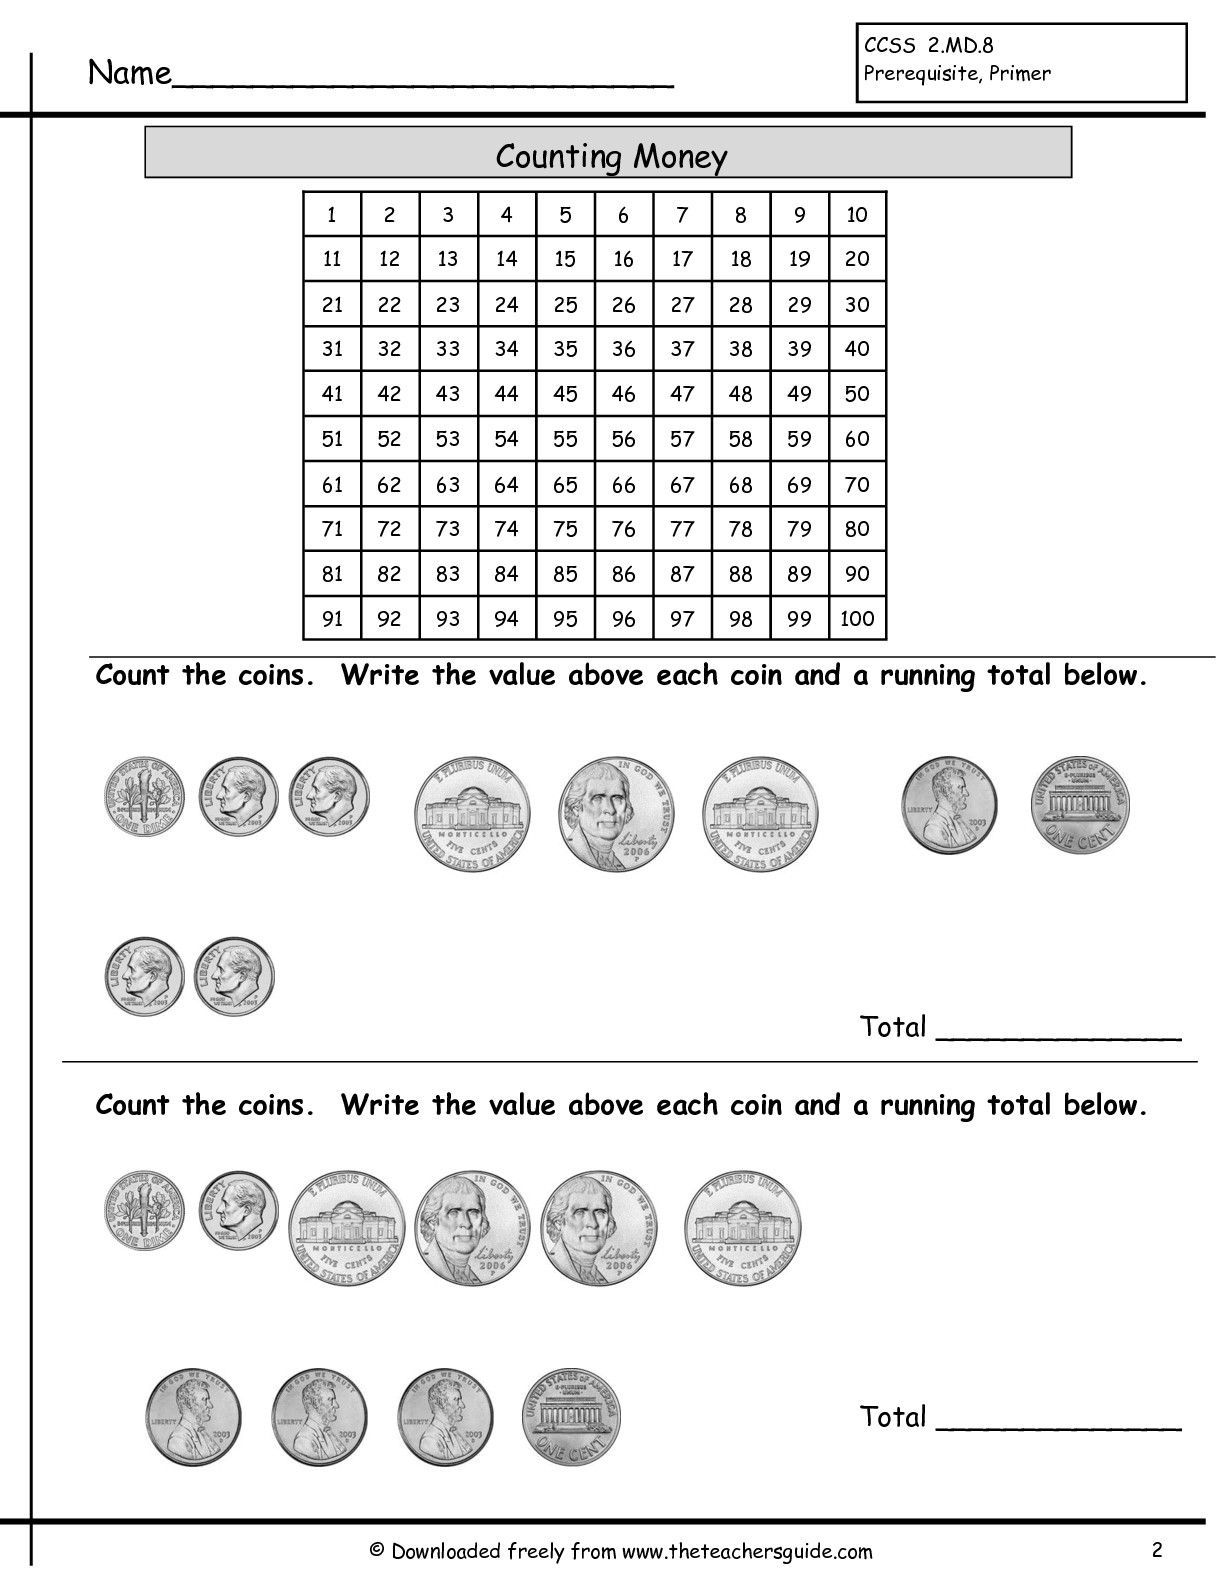 counting coins worksheet Free math worksheets, Math